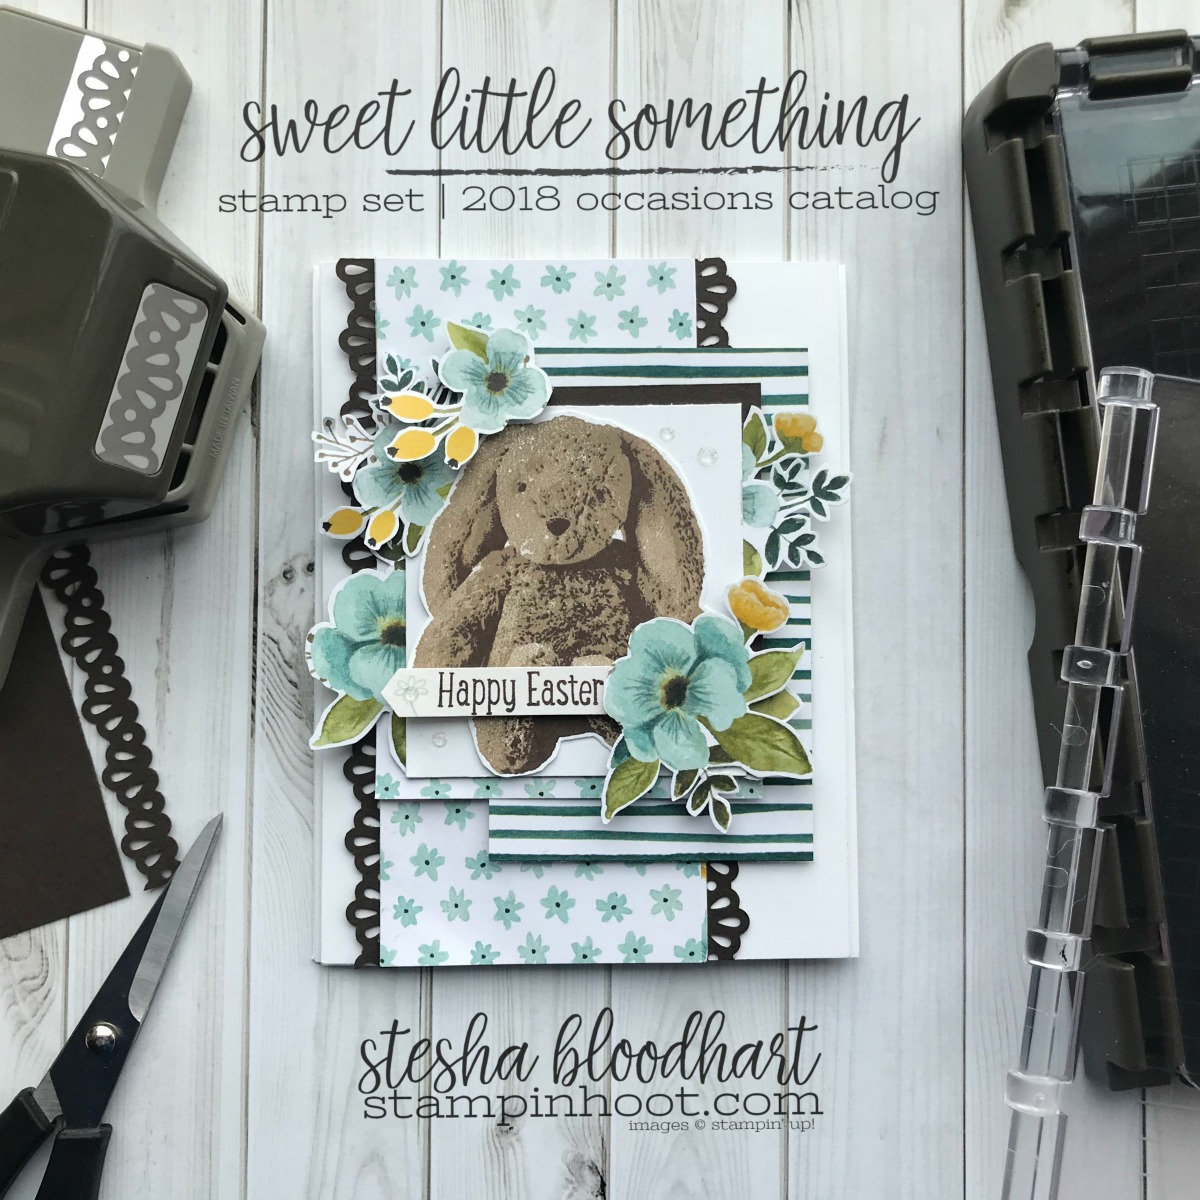 Sweet Little Something Stamp Set by Stampin' Up! From the 2018 Occasions Catalog. Easter Card by Stesha Bloodhart, Stampin' Hoot! for #gdp131 Theme Challenge #steshabloodhart #stampinhoot